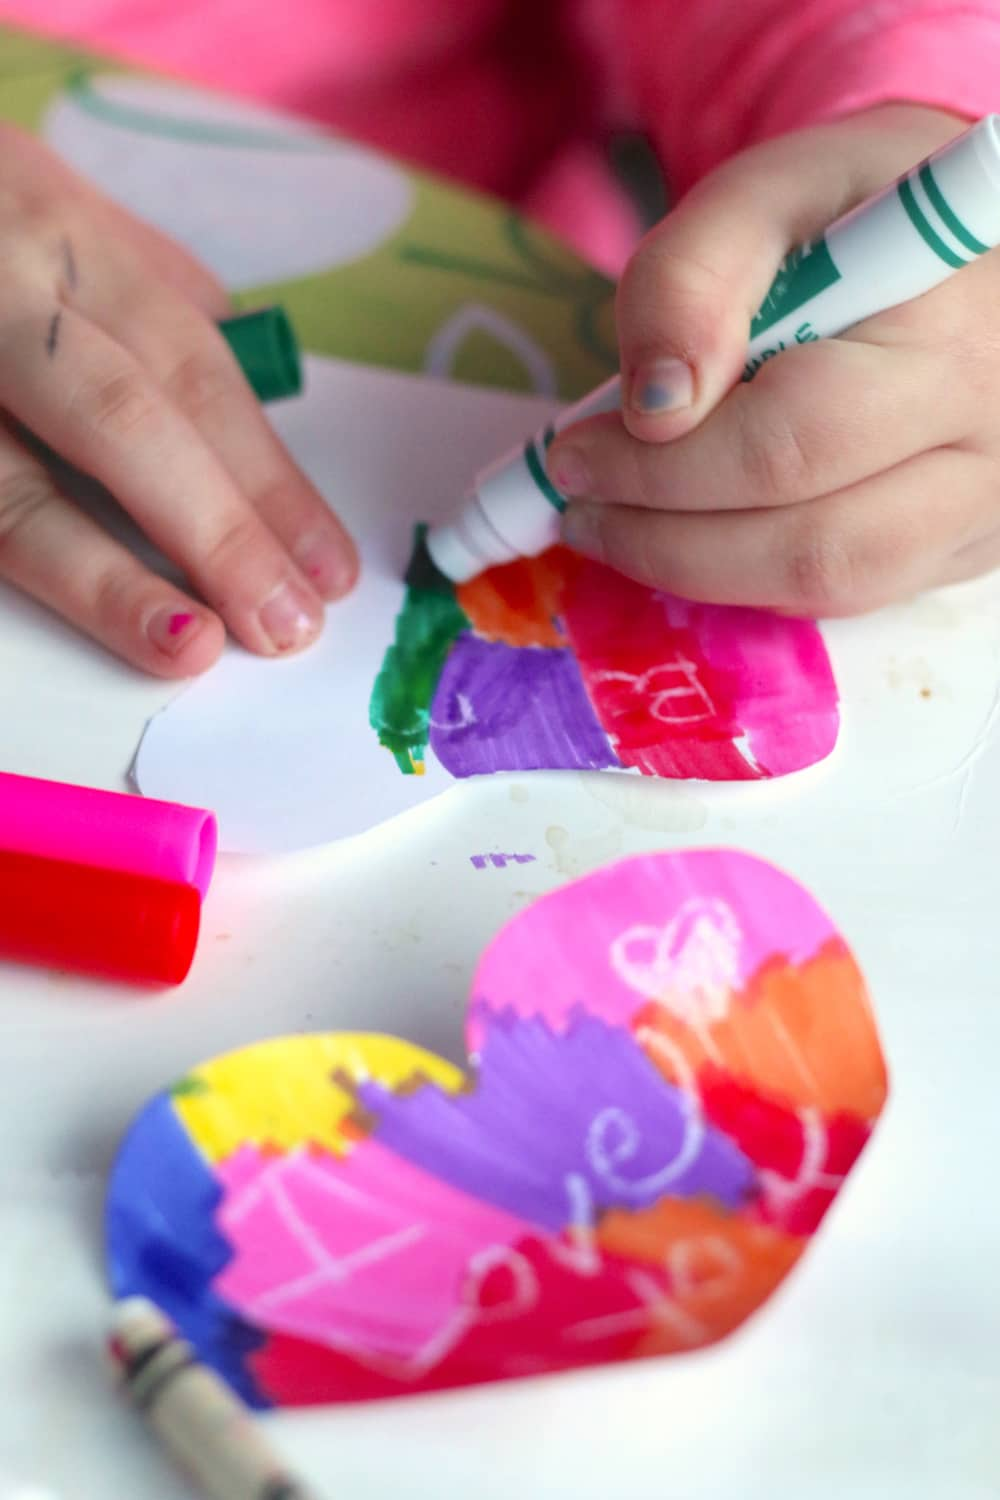 A child colours with bright washable markers.